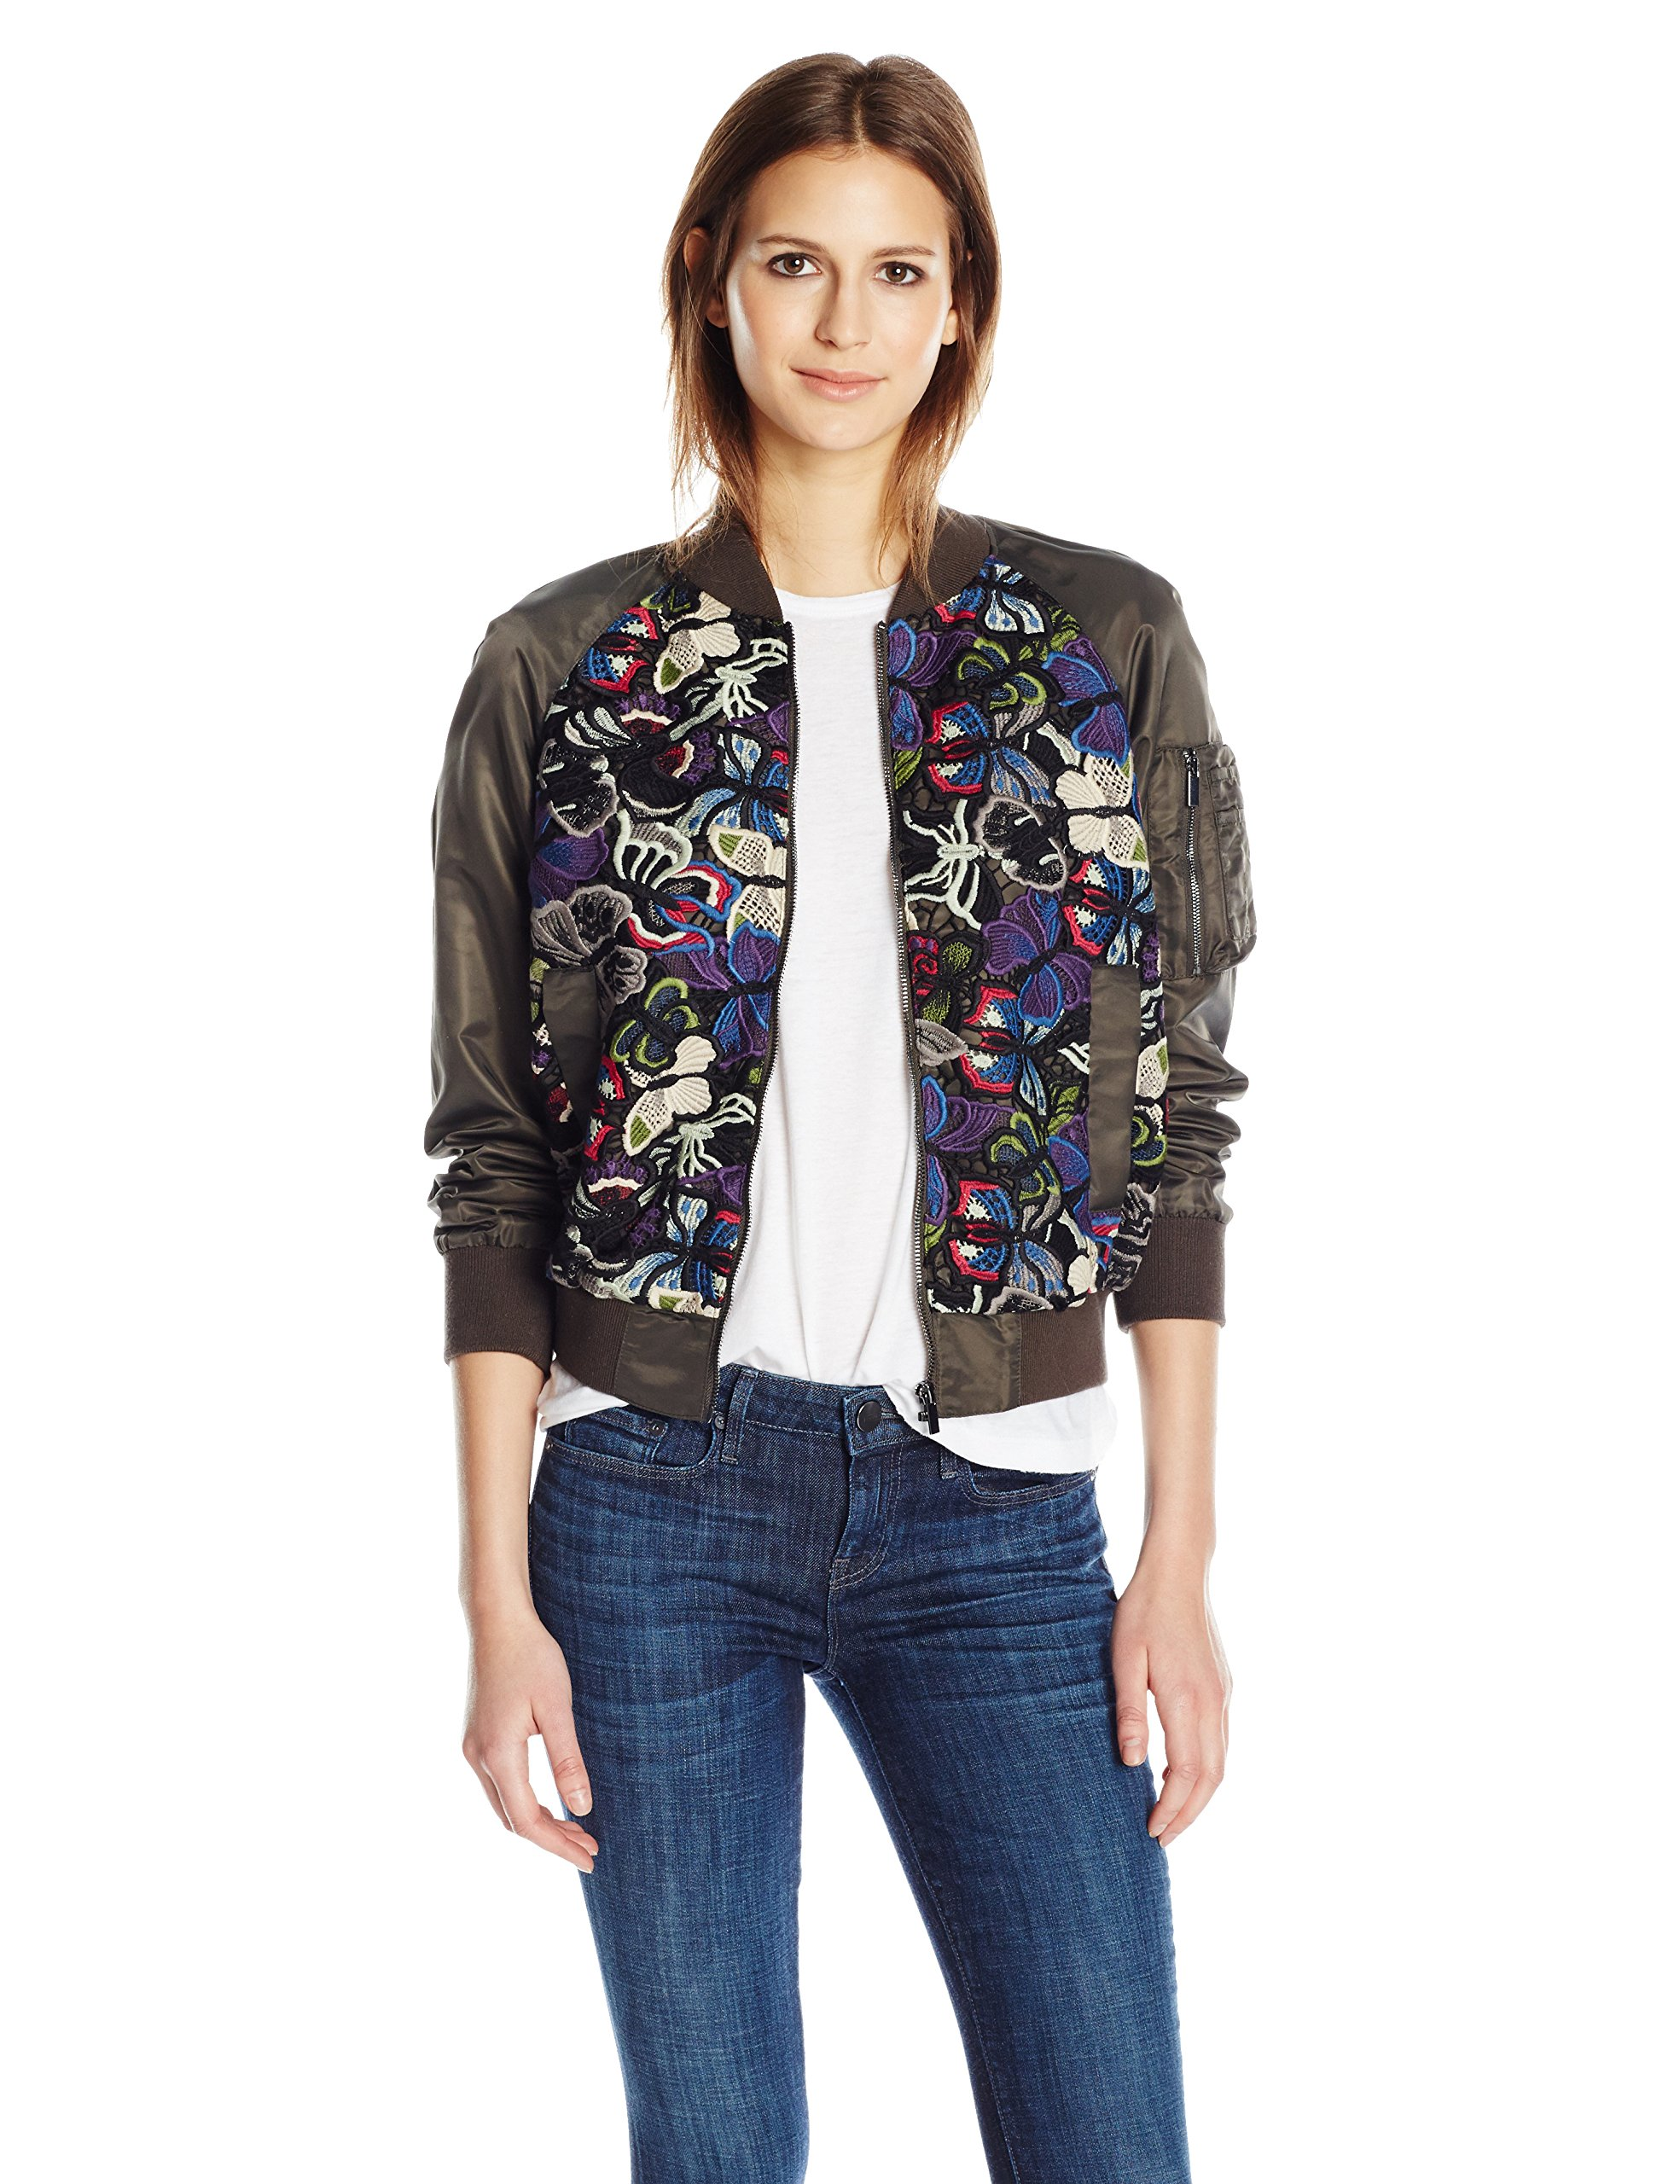 French Connection Women's Rivera Floral Bomber Jacket, Woodland Green/Multi, 2 by French Connection